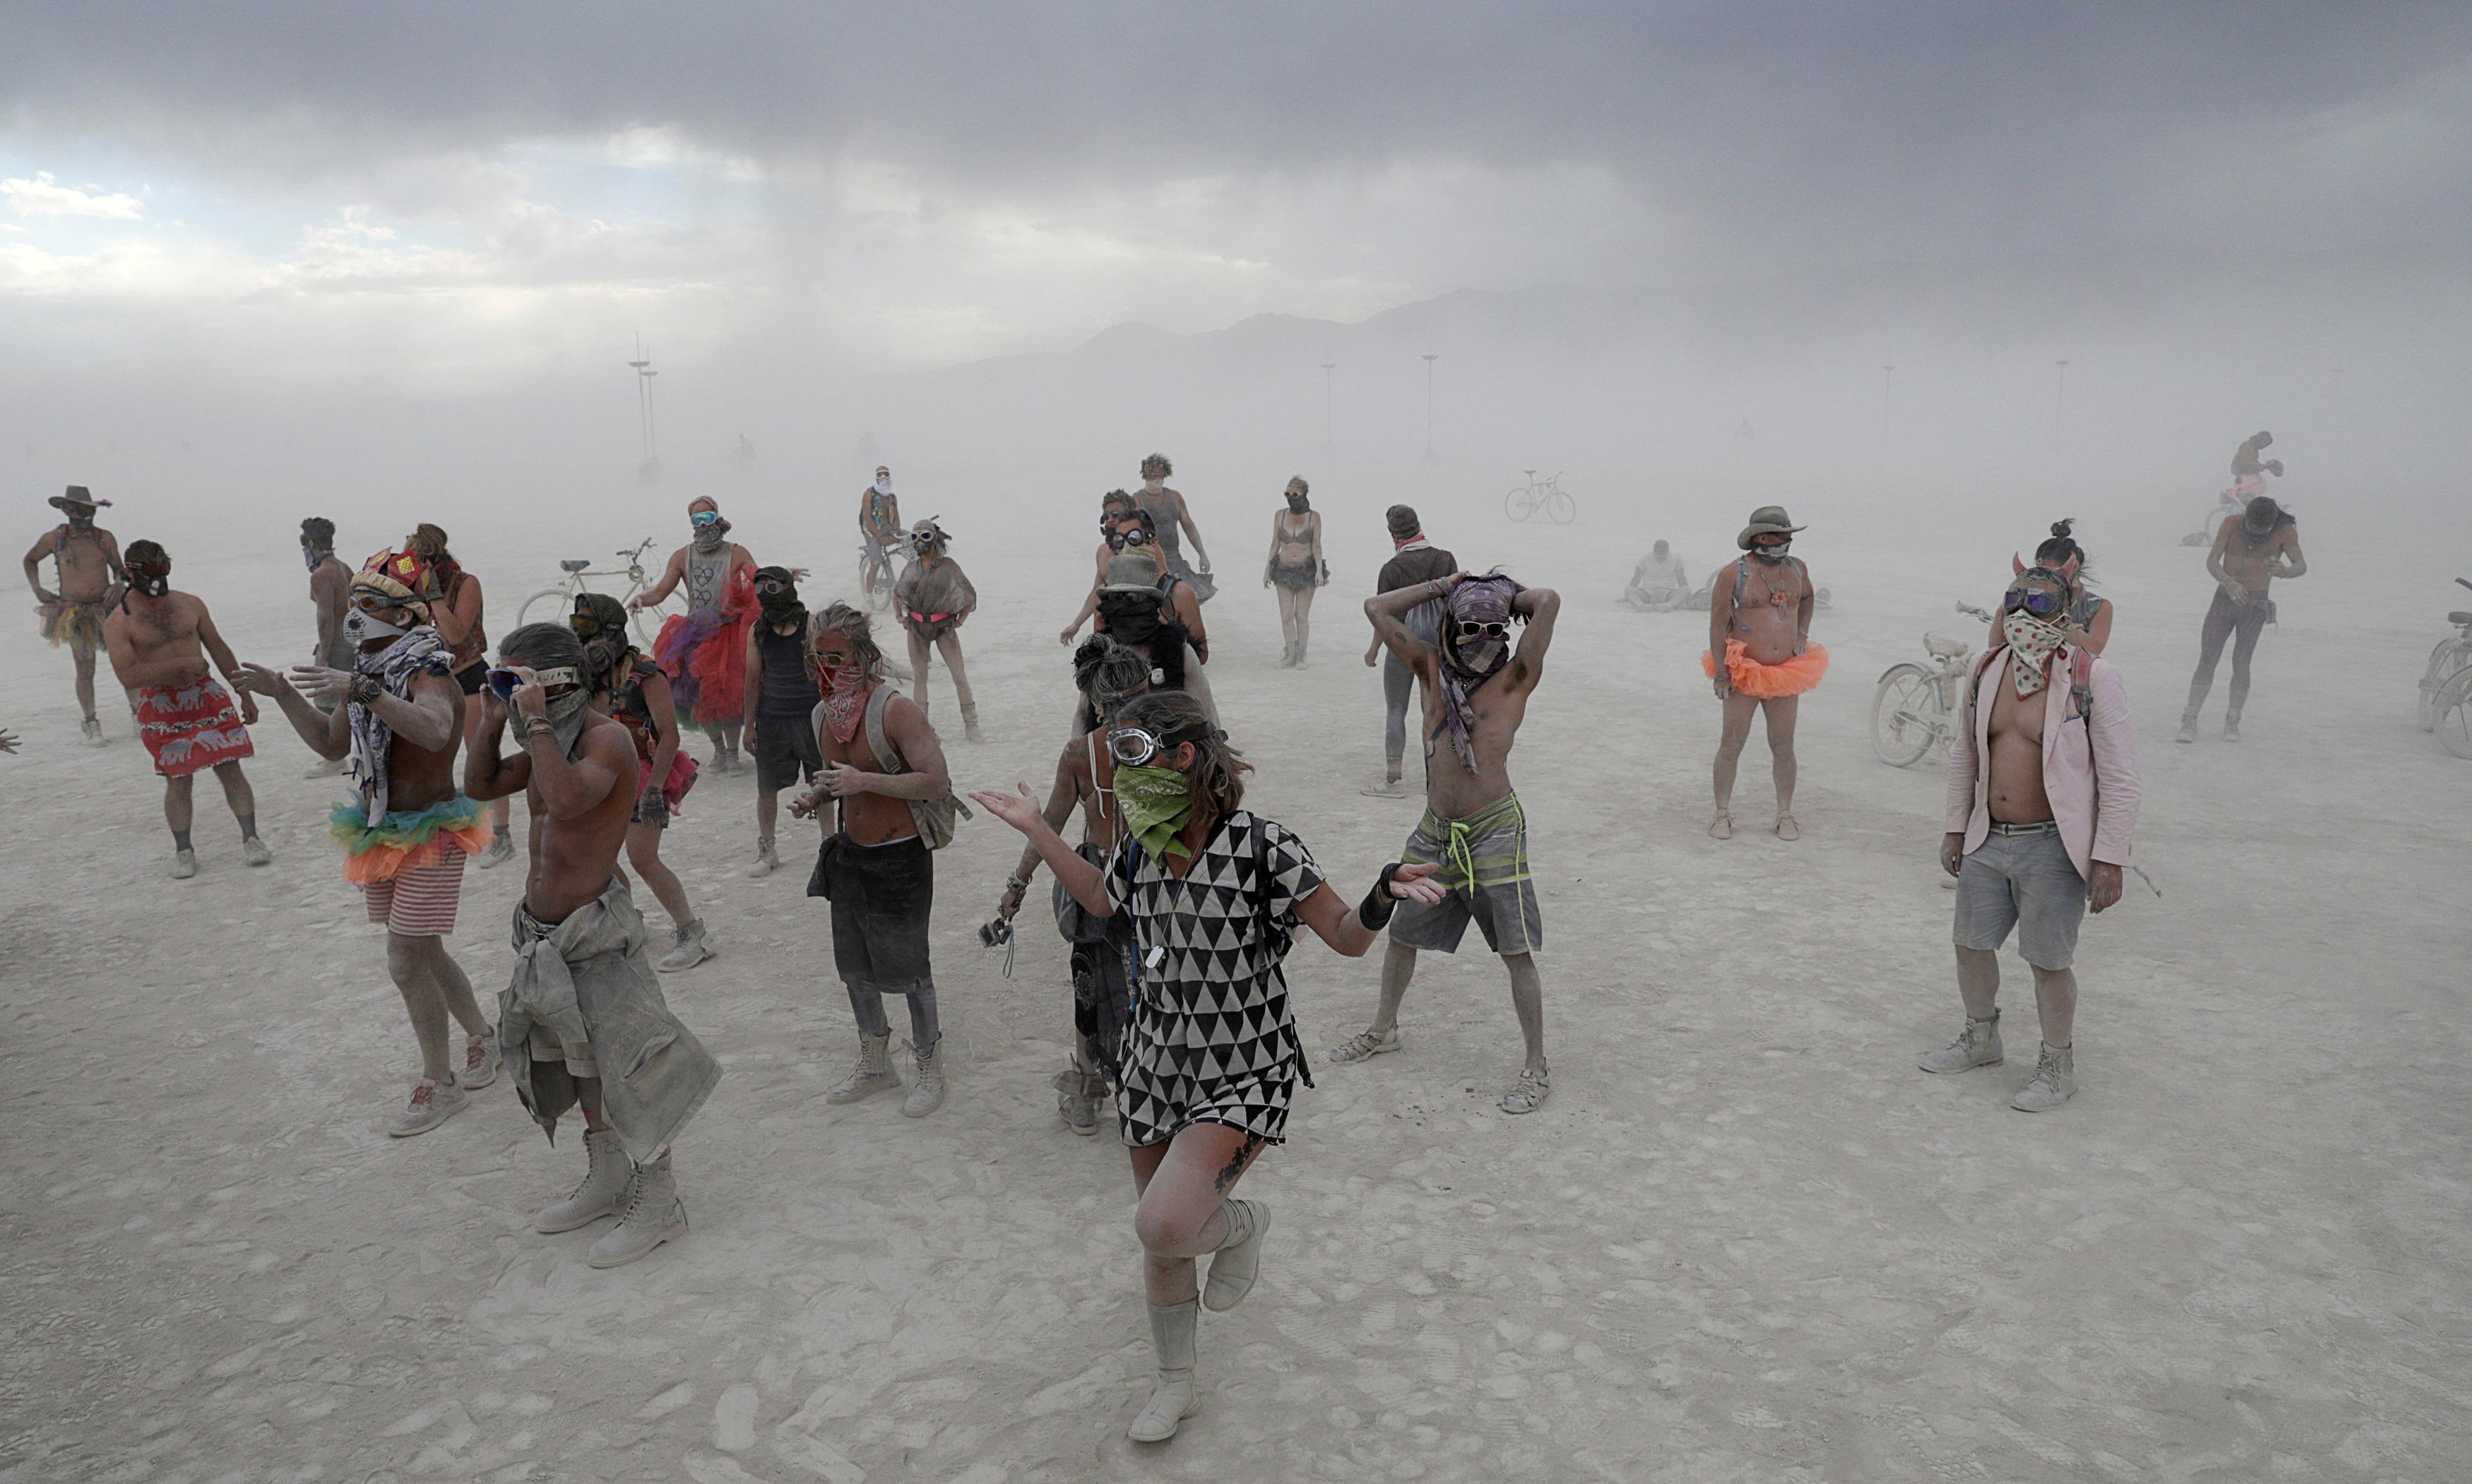 Burning Man: 58 people arrested at festival in sharp increase from last year